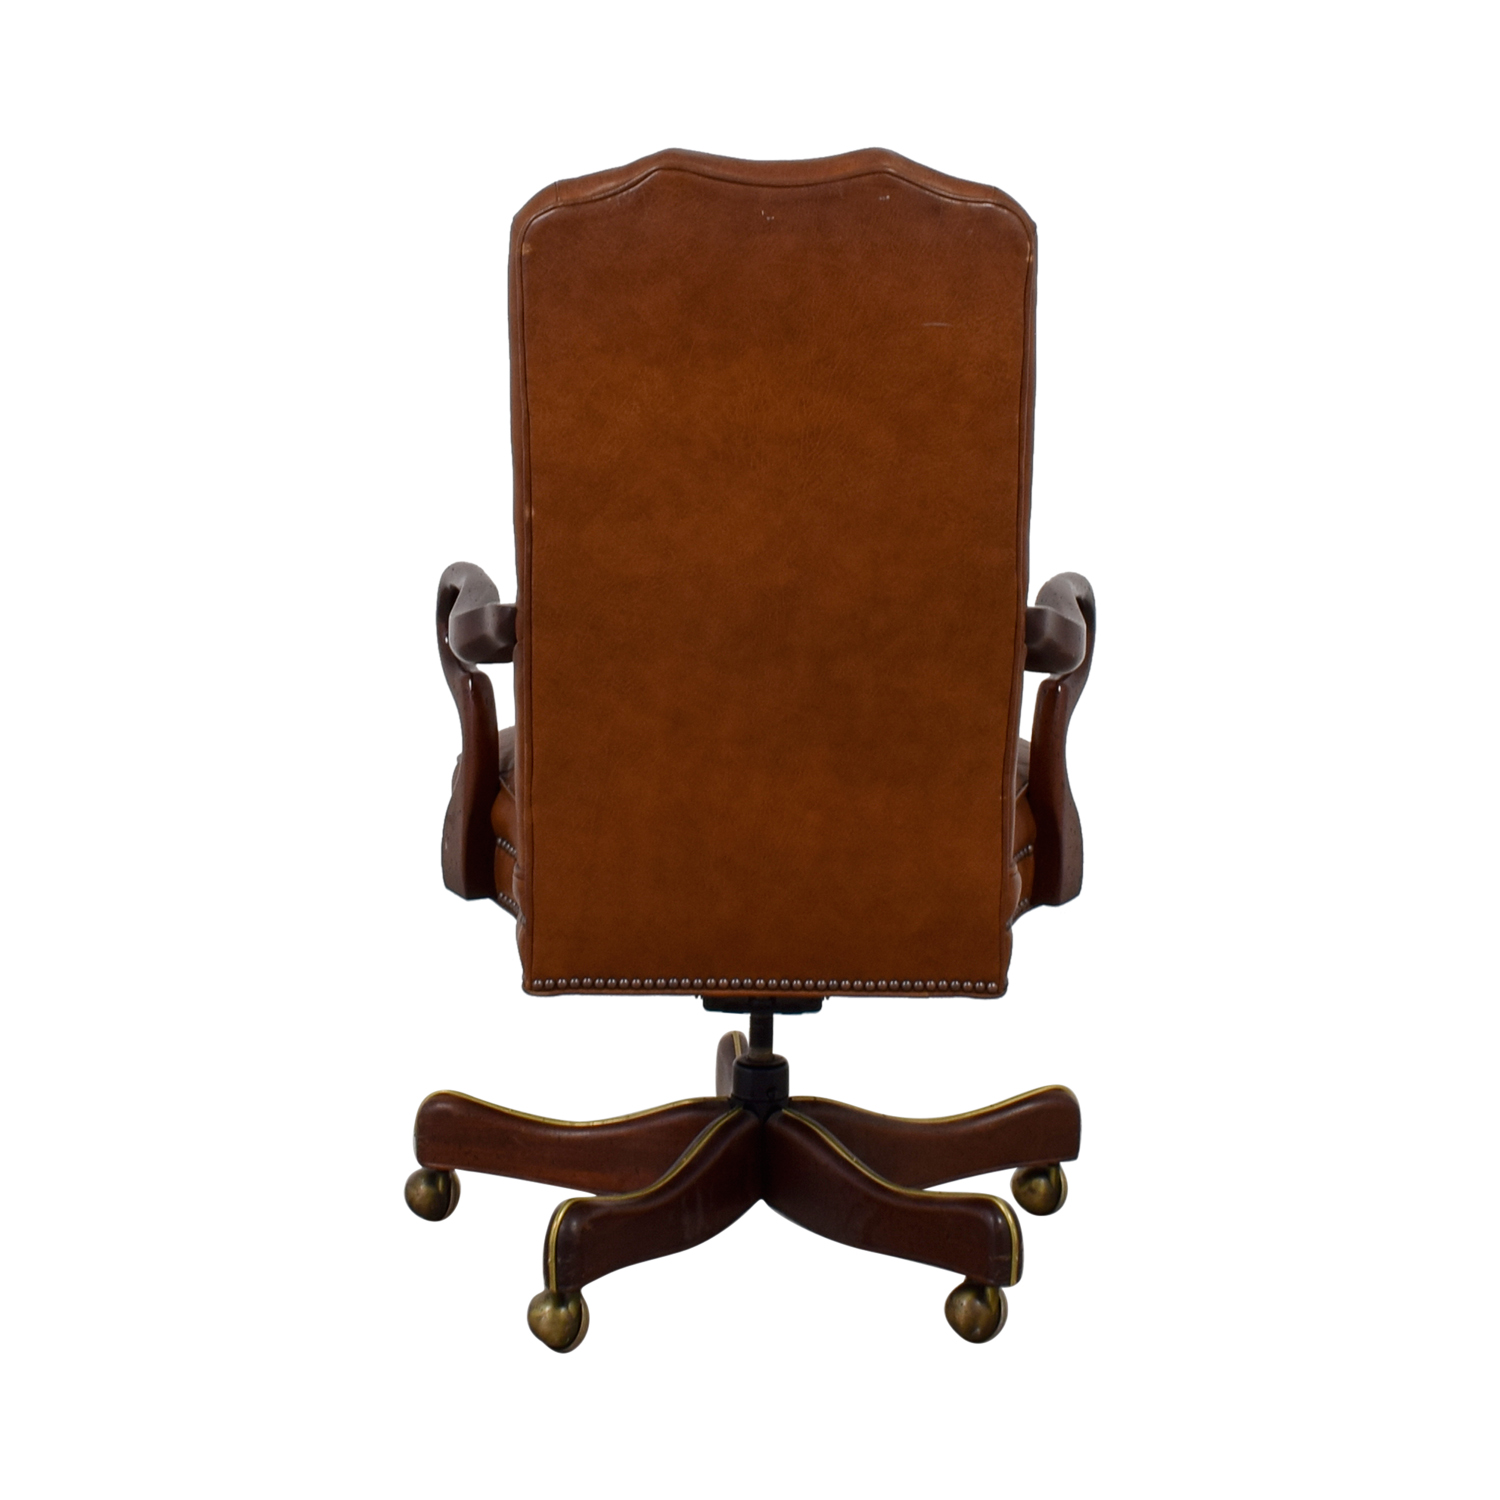 buy Charles Stewart Company Charles Stewart Company Brown Leather Desk Chair online